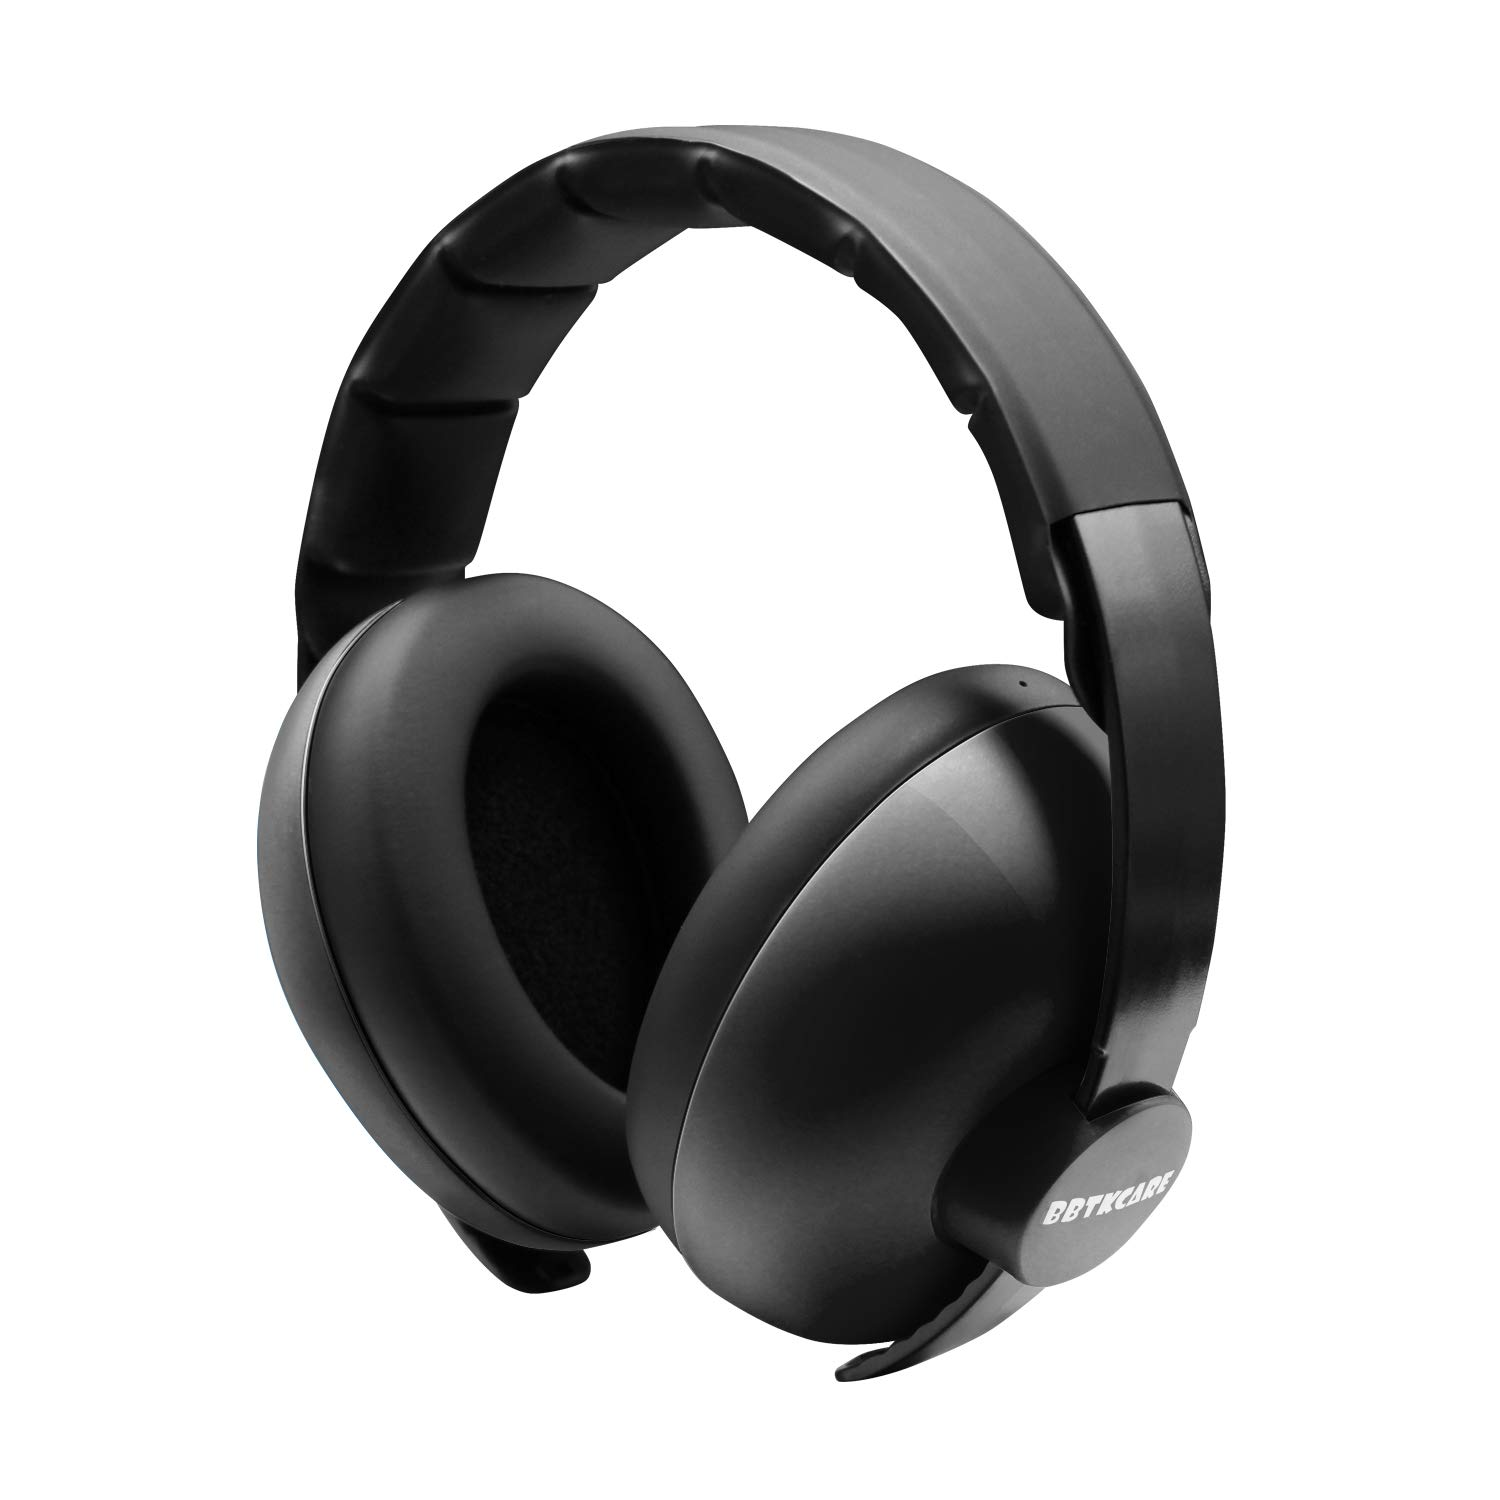 BBTKCARE Baby Headphones Noise Cancelling Headphones for Babies for 3 Months to 2 Years (Black)